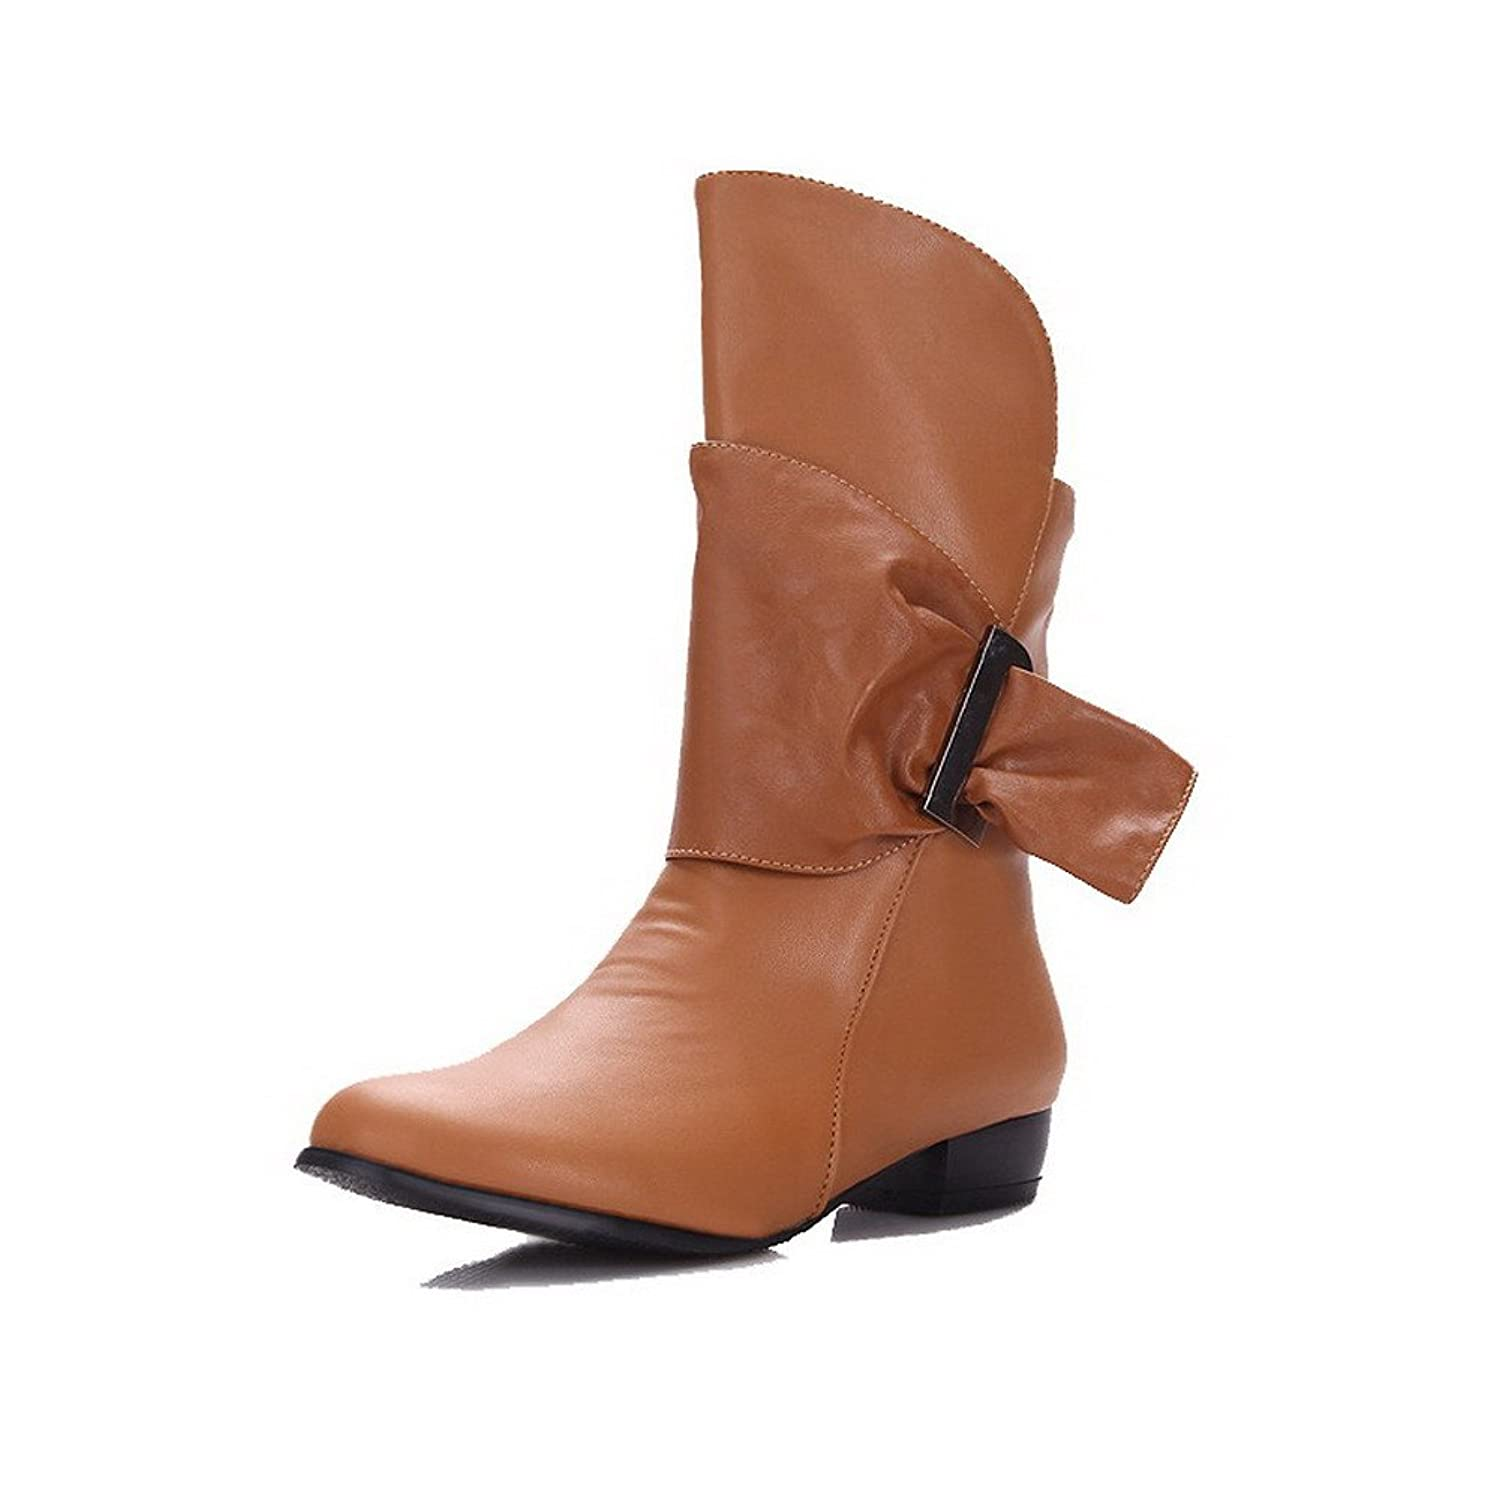 AmoonyFashion Women's Low-Heels Solid Round Closed Toe Soft Material Pull-on Boots